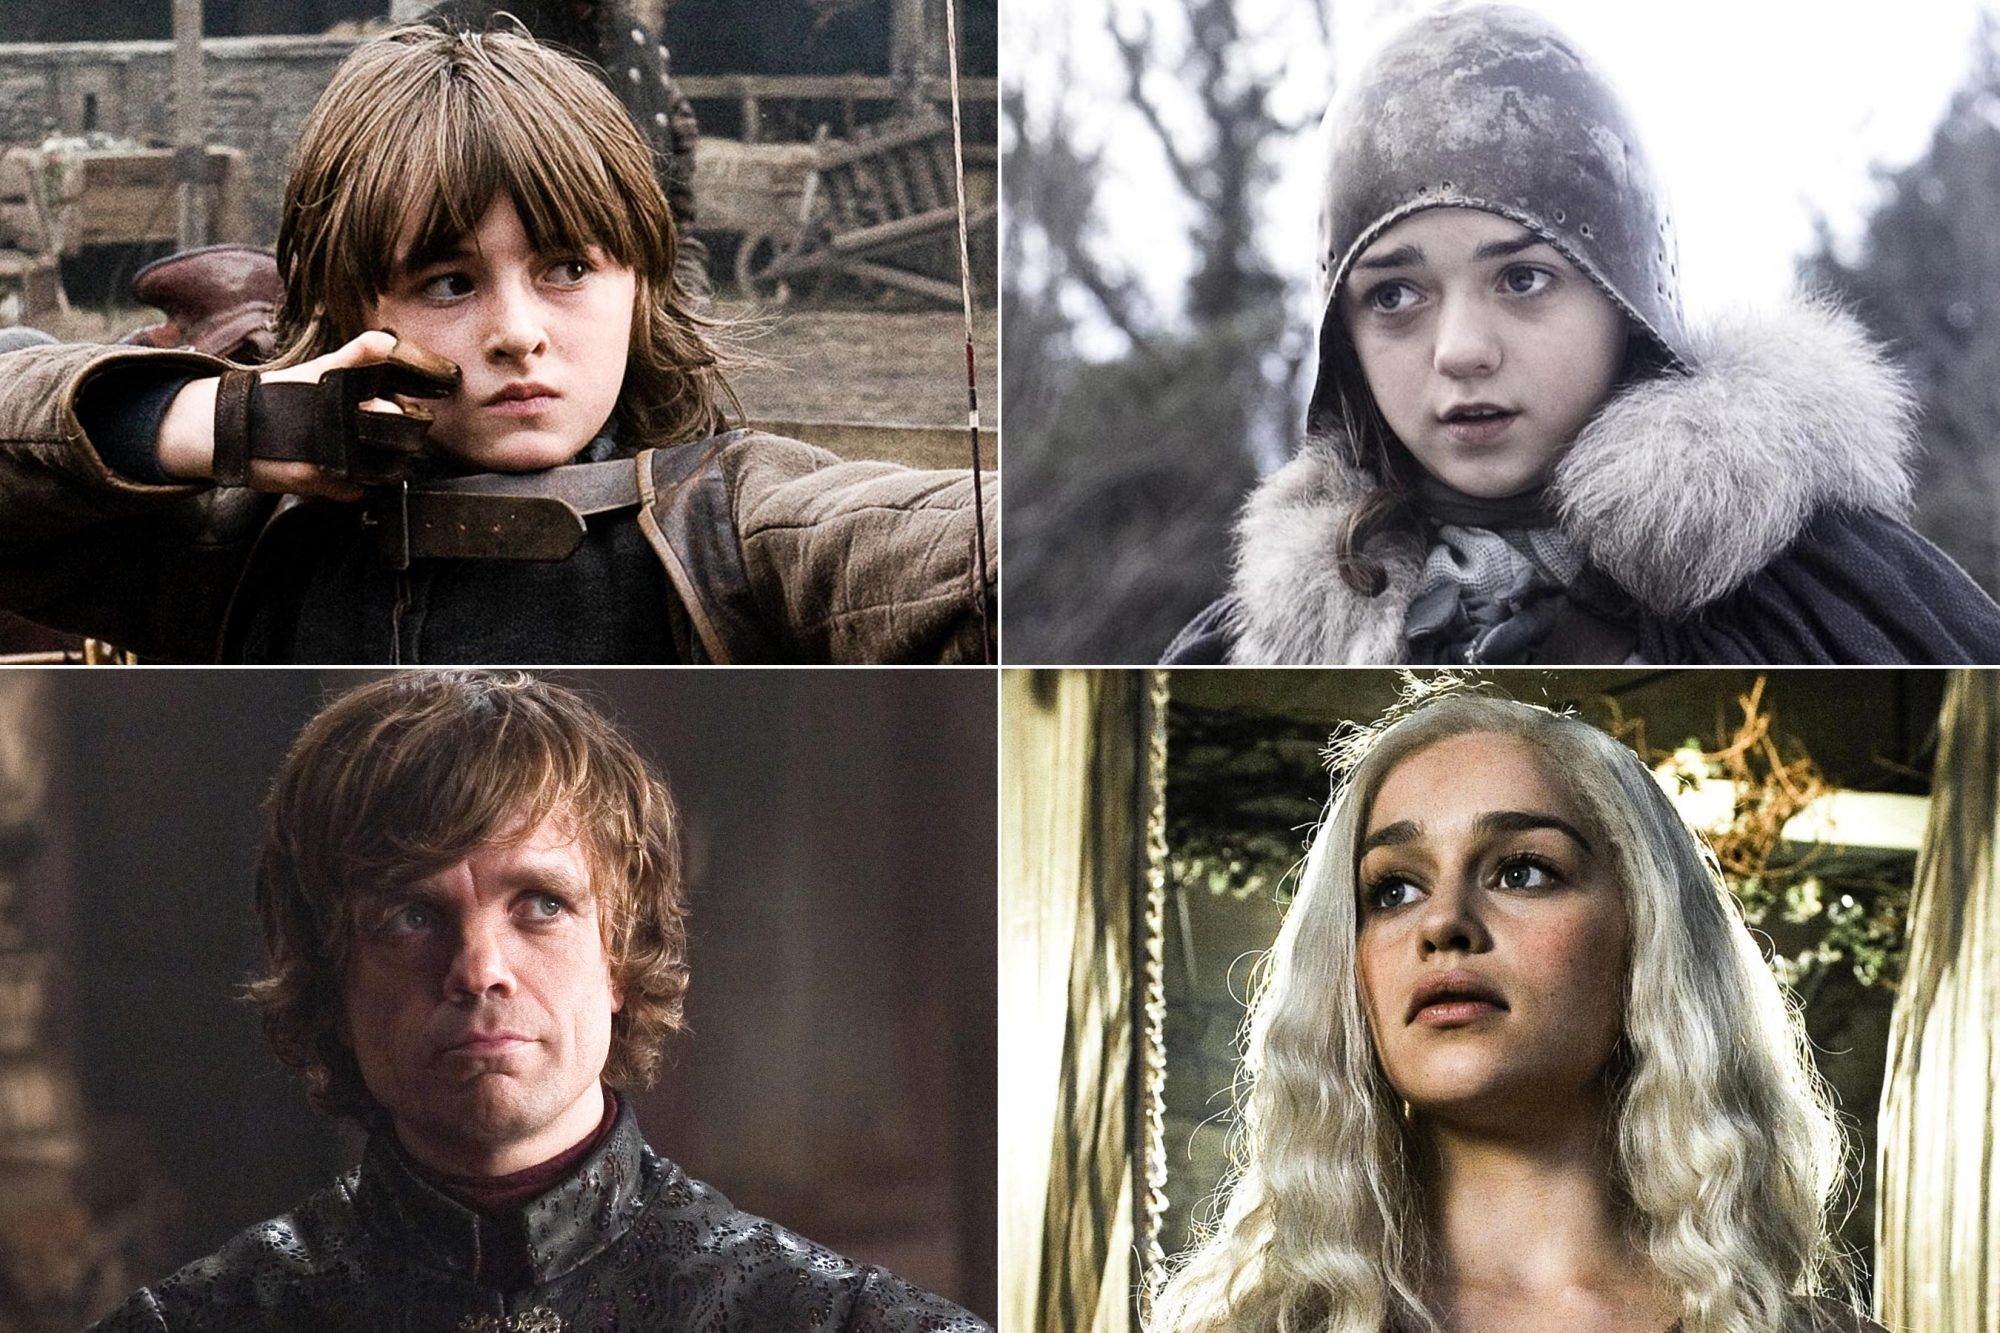 Game of Thrones Now and Then Isaac Hempstead Wright as Bran Stark Maisie Williams as Arya Stark Peter Dinklage as Tyrion Lannister Emilia Clarke as Daenerys Targaryen CR: Helen Sloan/HBO (3); HBO